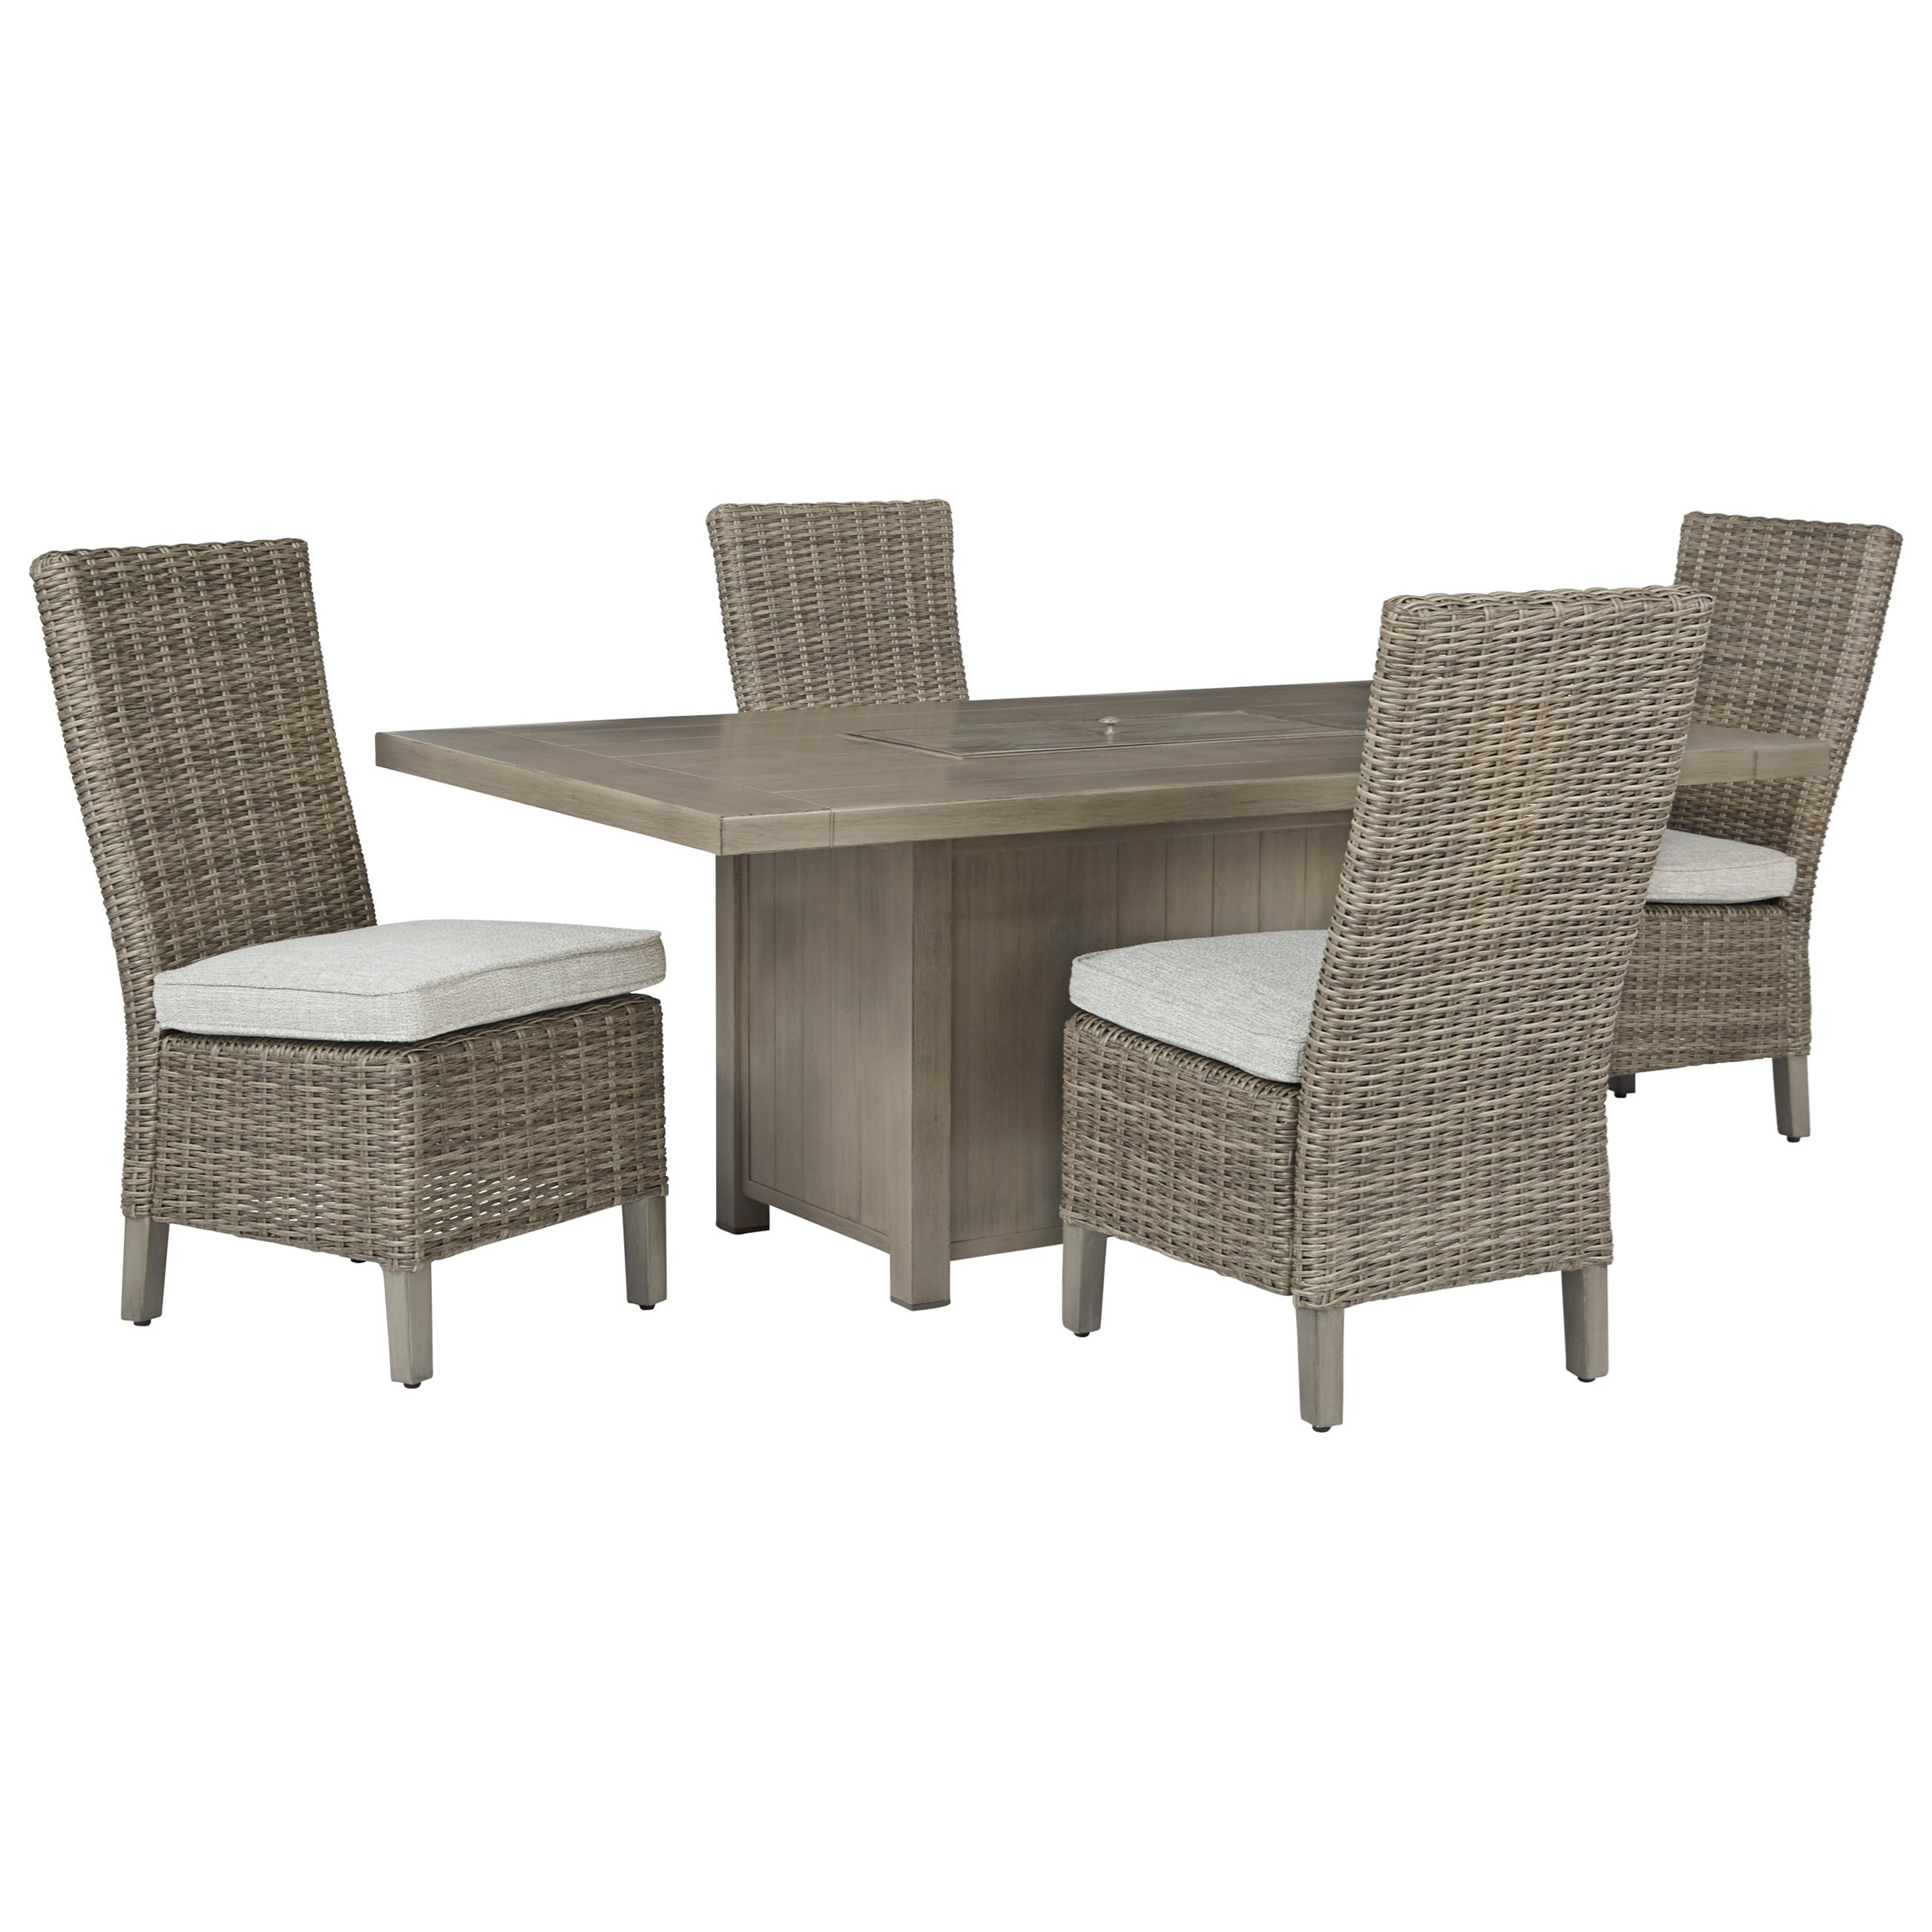 Windon Barn 5-Piece Rectangular Fire Pit Table Set by Signature Design by Ashley at Furniture and ApplianceMart